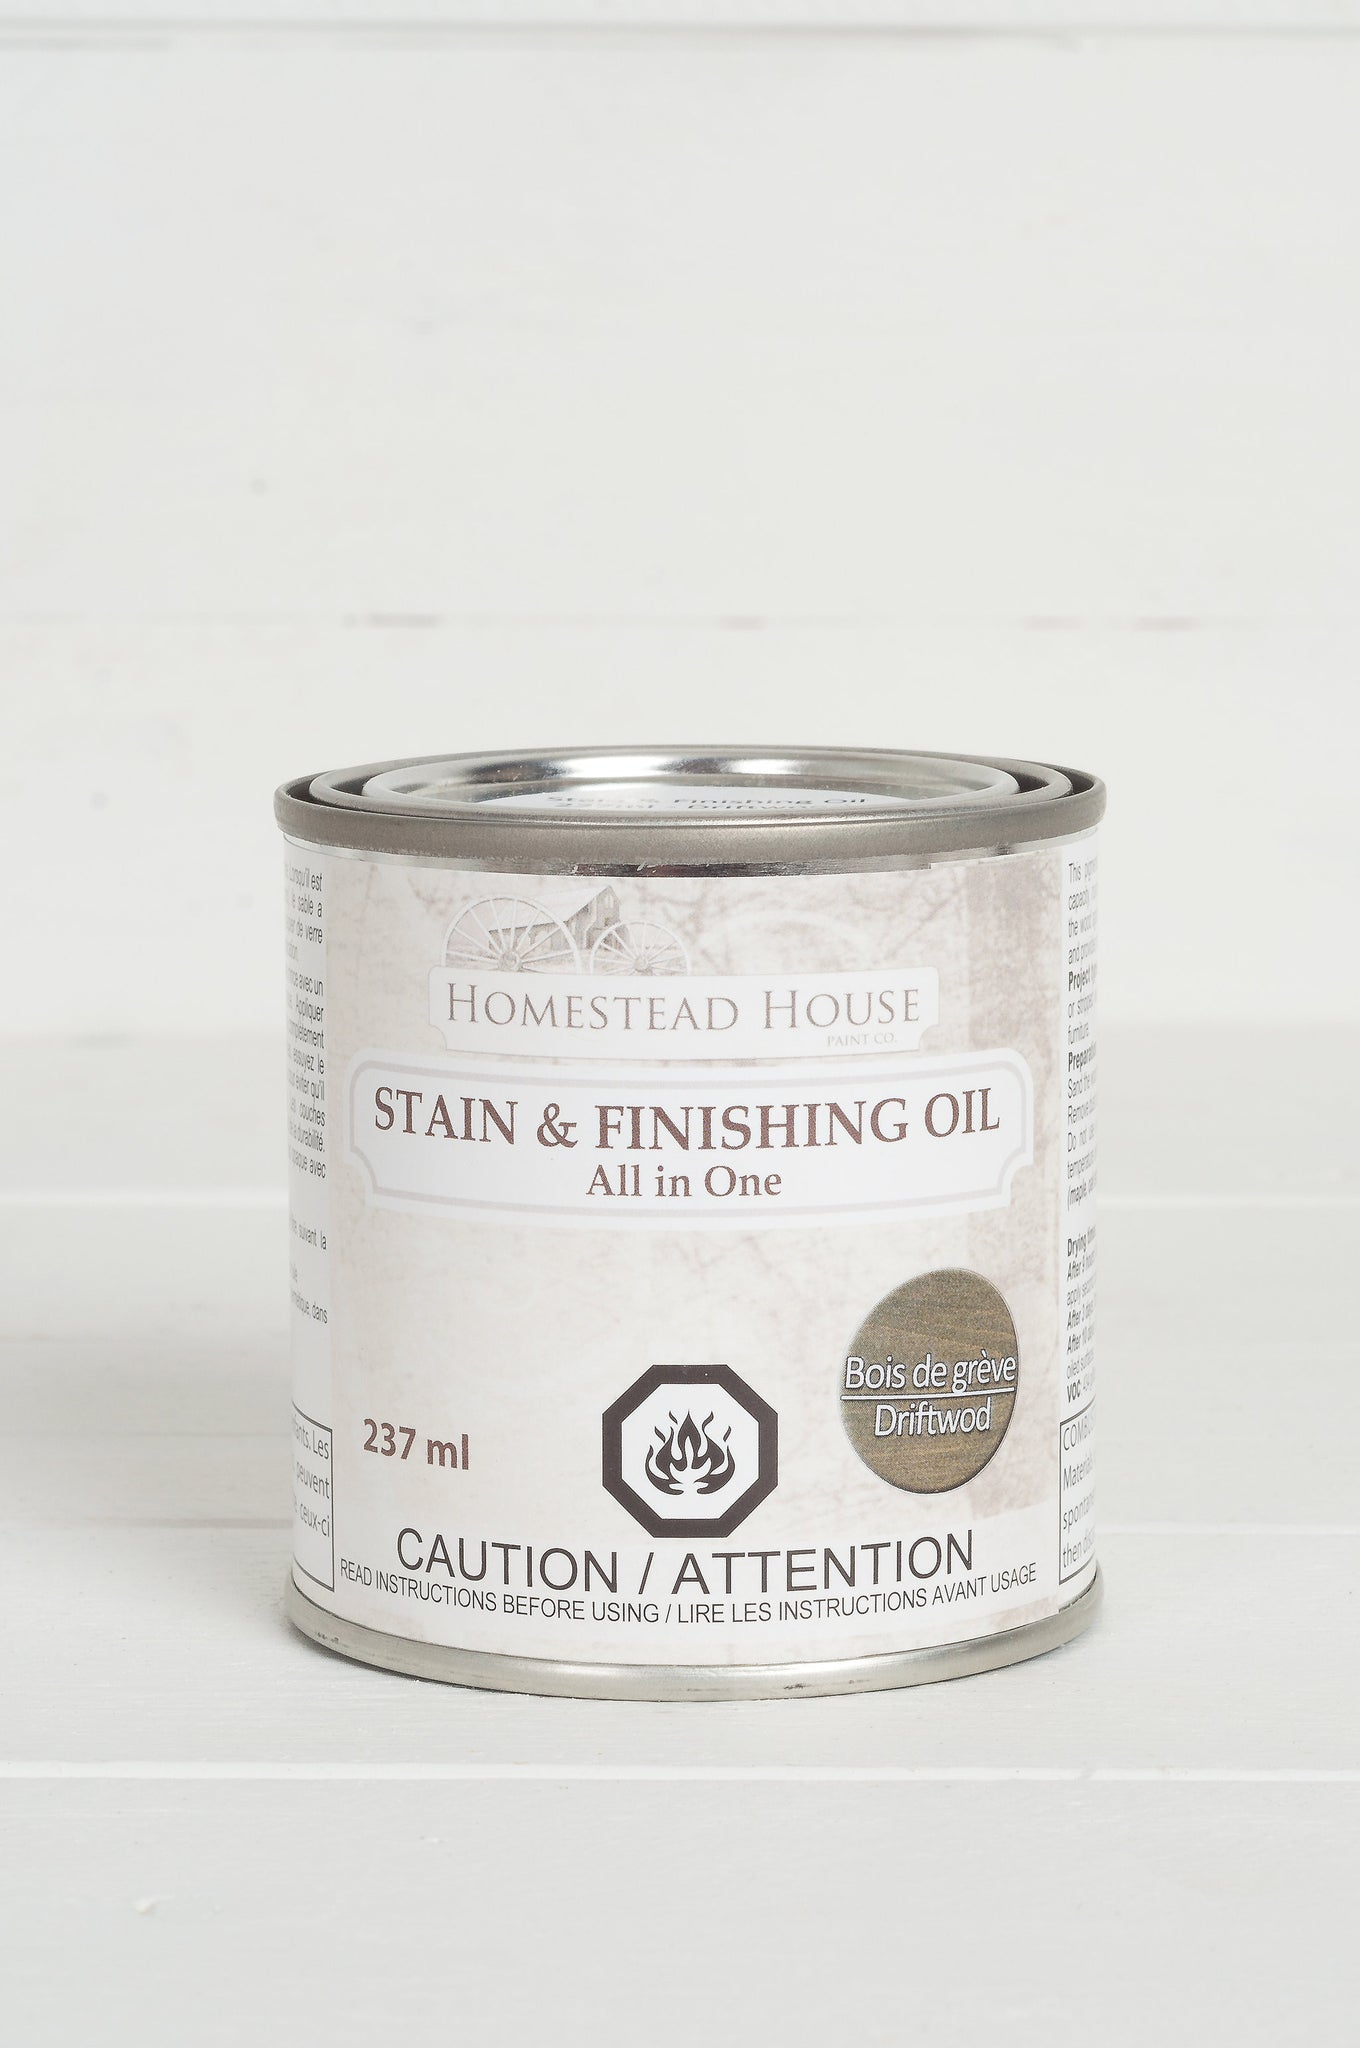 Fusion Mineral Paint Homestead House Stain and Finishing Oil Driftwood